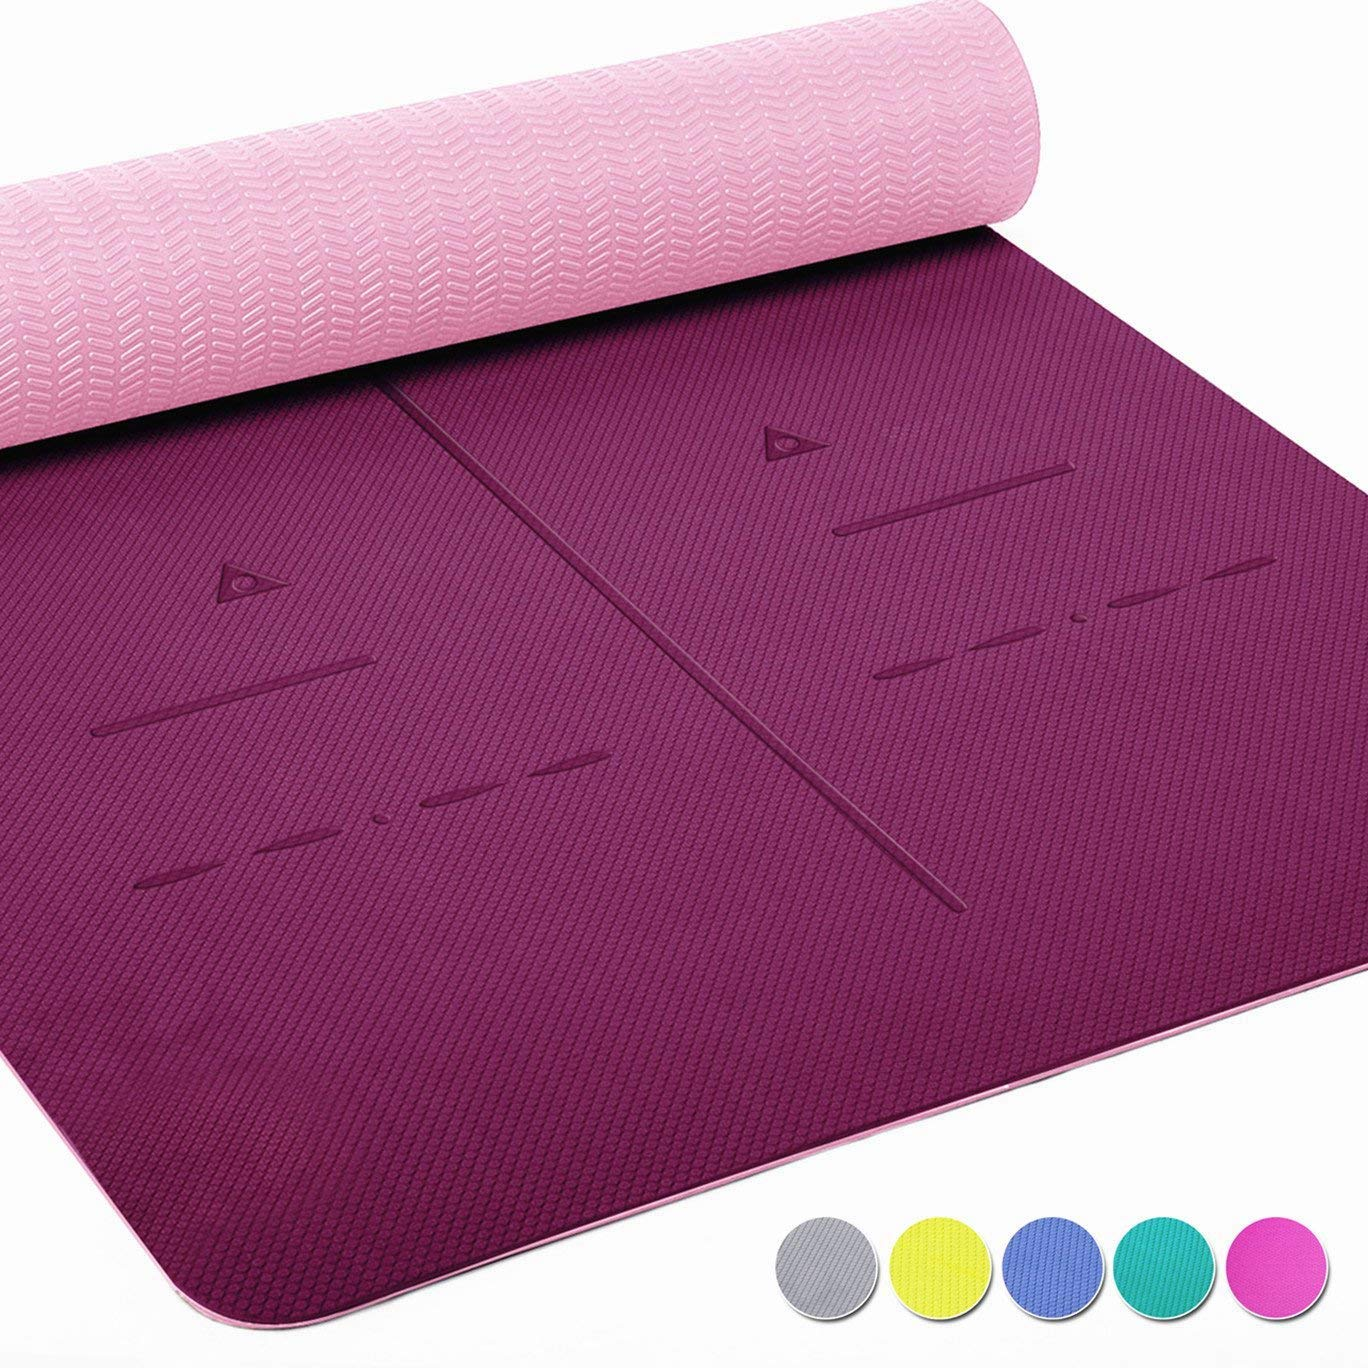 Heathyoga Eco Friendly Non Slip Yoga Mat, Body Alignment System, SGS Certified TPE Material - Textured Non Slip Surface and Optimal Cushioning,72''x 26'' Thickness 1/4'' by Heathyoga